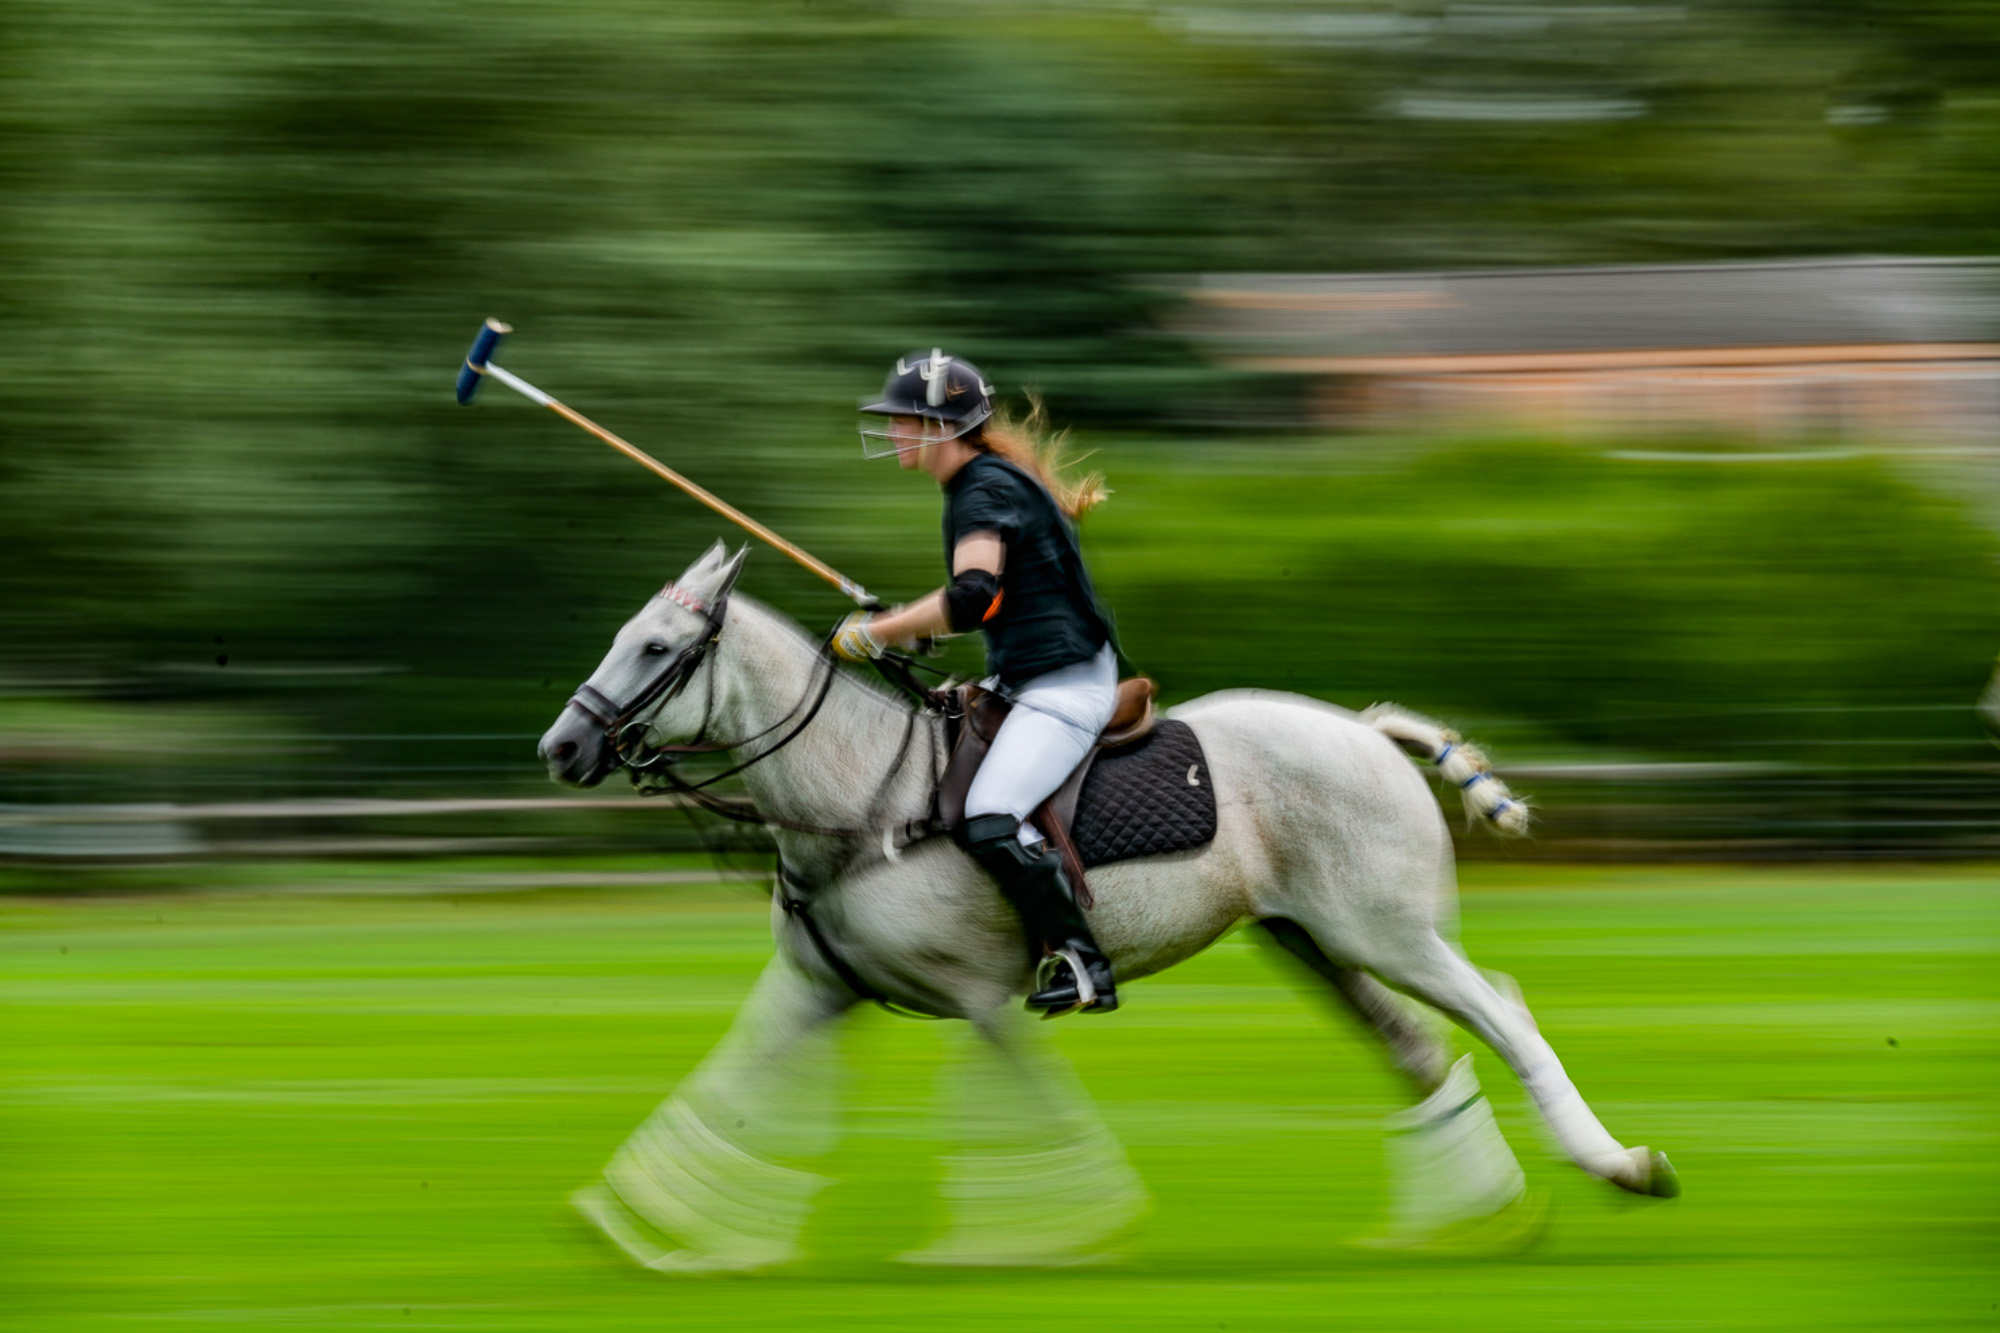 one of the women polo players  at the Southampton Polo Club in flight.jpg